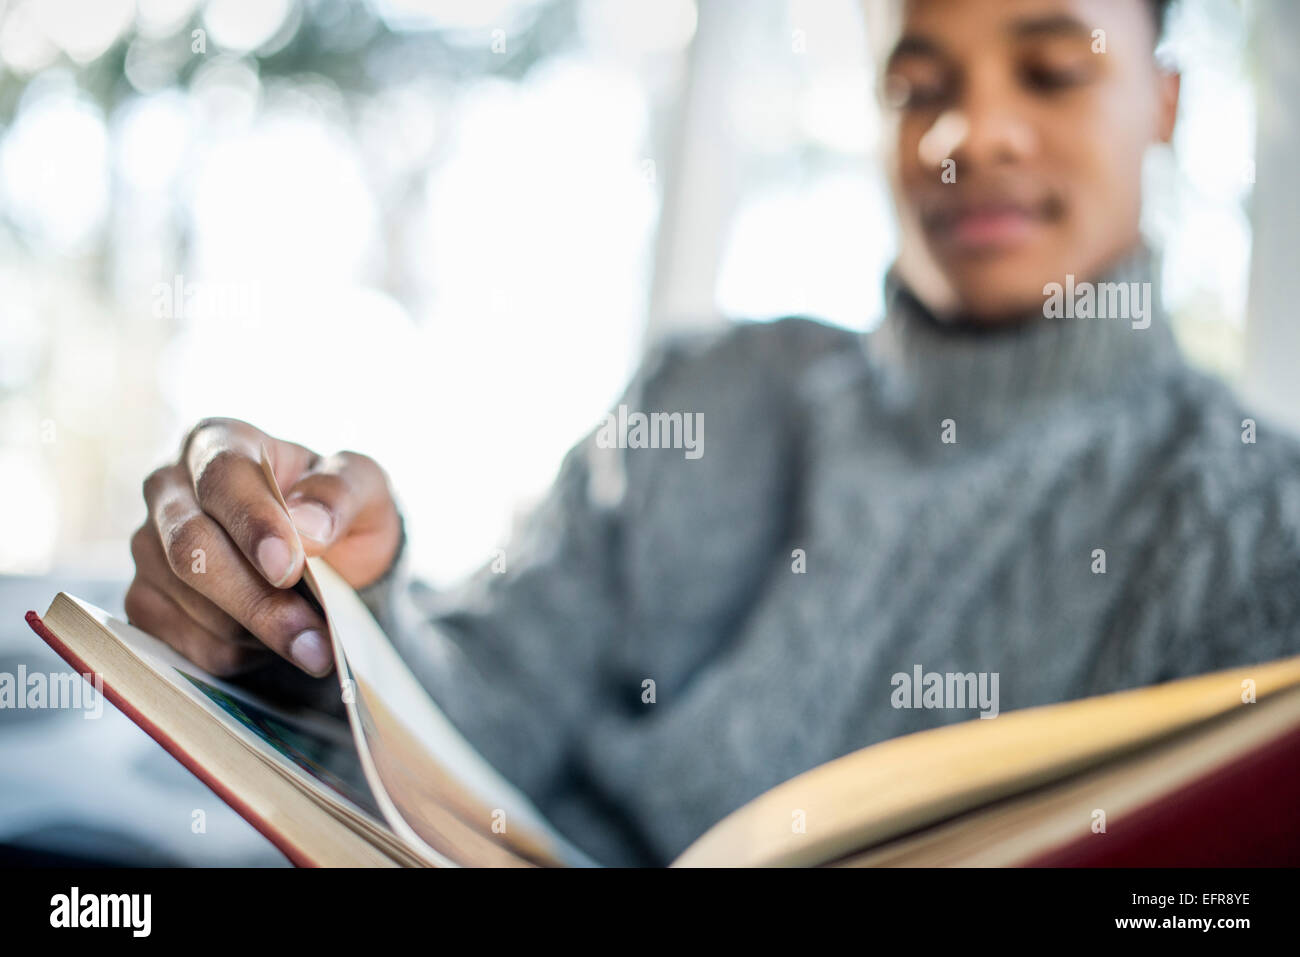 Man wearing a grey roll-neck jumper flipping through the pages of a book. - Stock Image